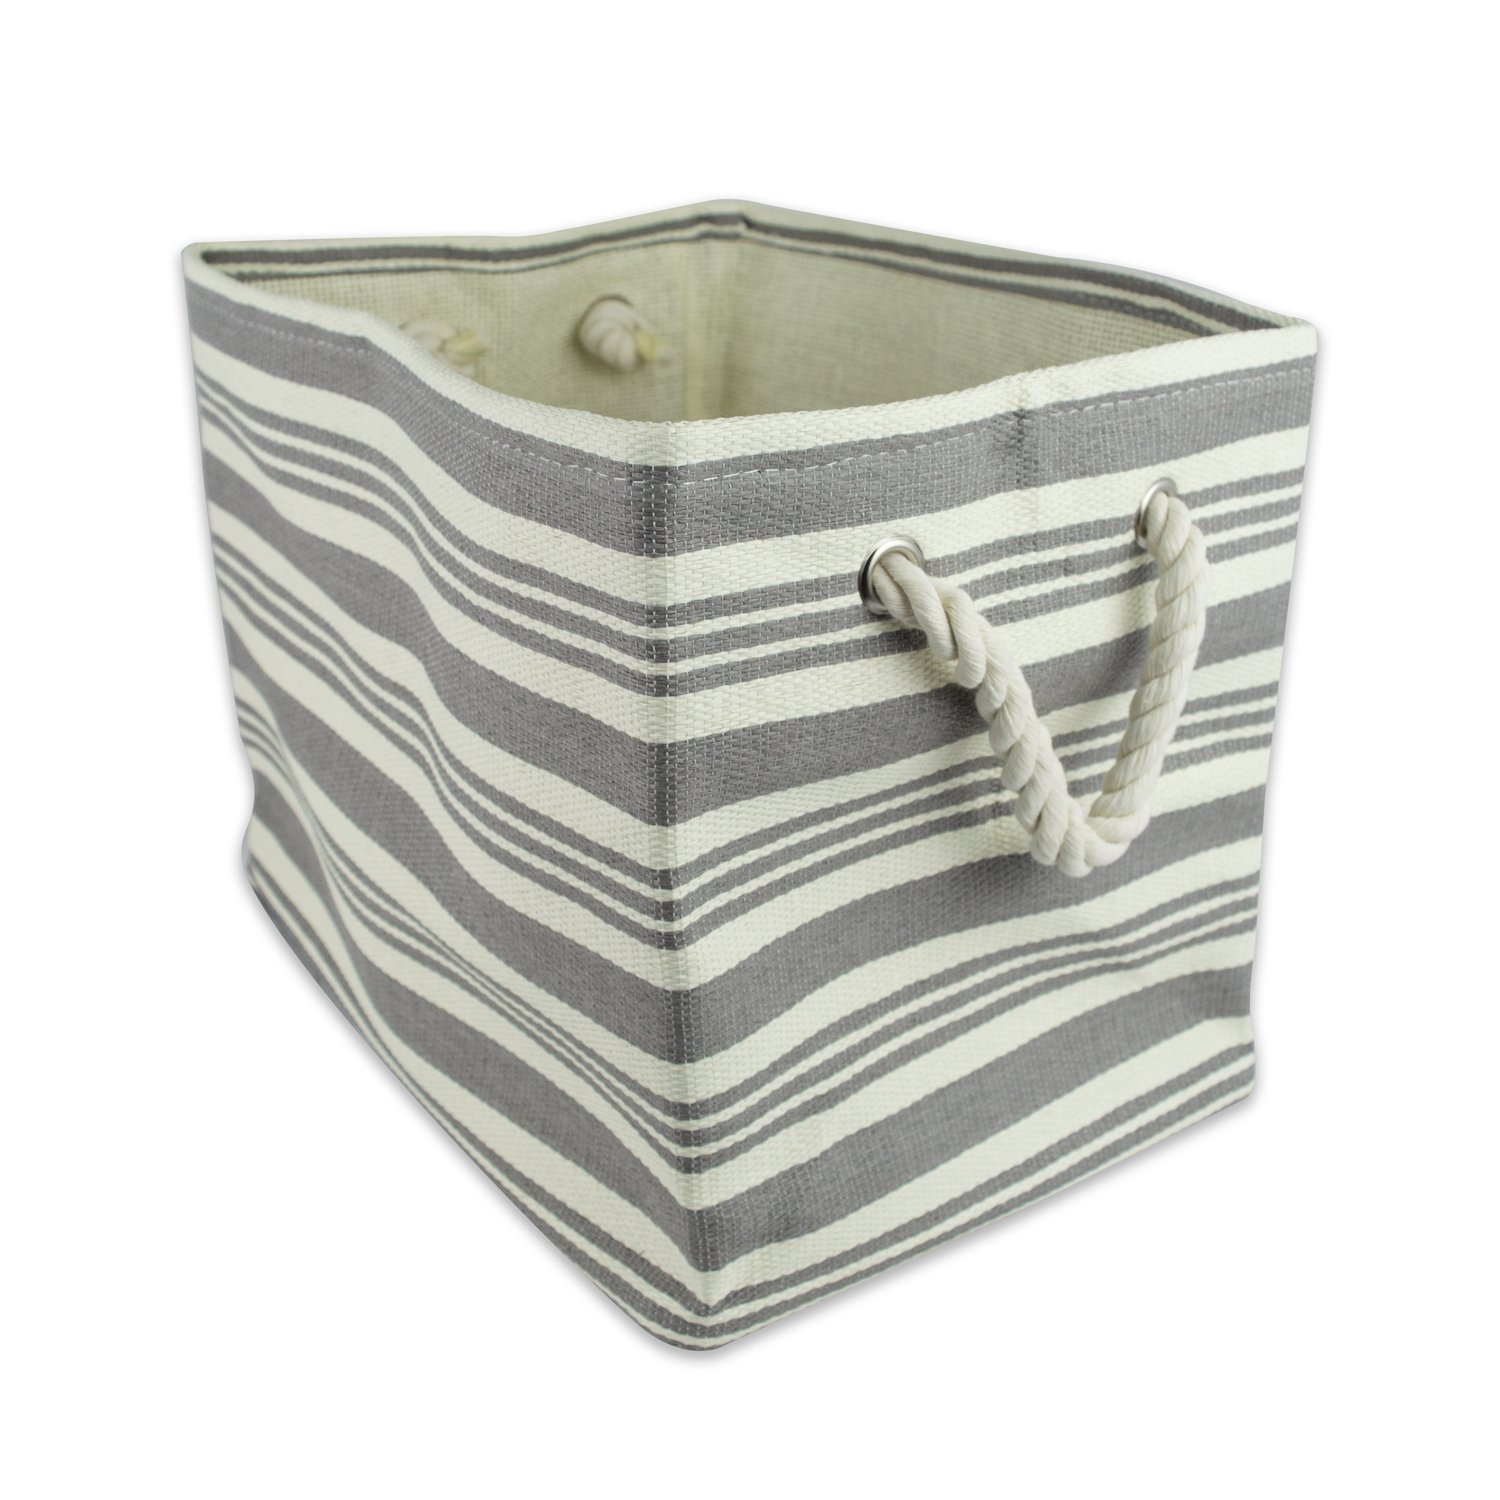 DII Woven Paper Storage Basket or Bin, Collapsible & Convenient Home Organization Solution for Office, Bedroom, Closet, Toys, Laundry (Small - 11x10x9�), Gray Urban Stripe